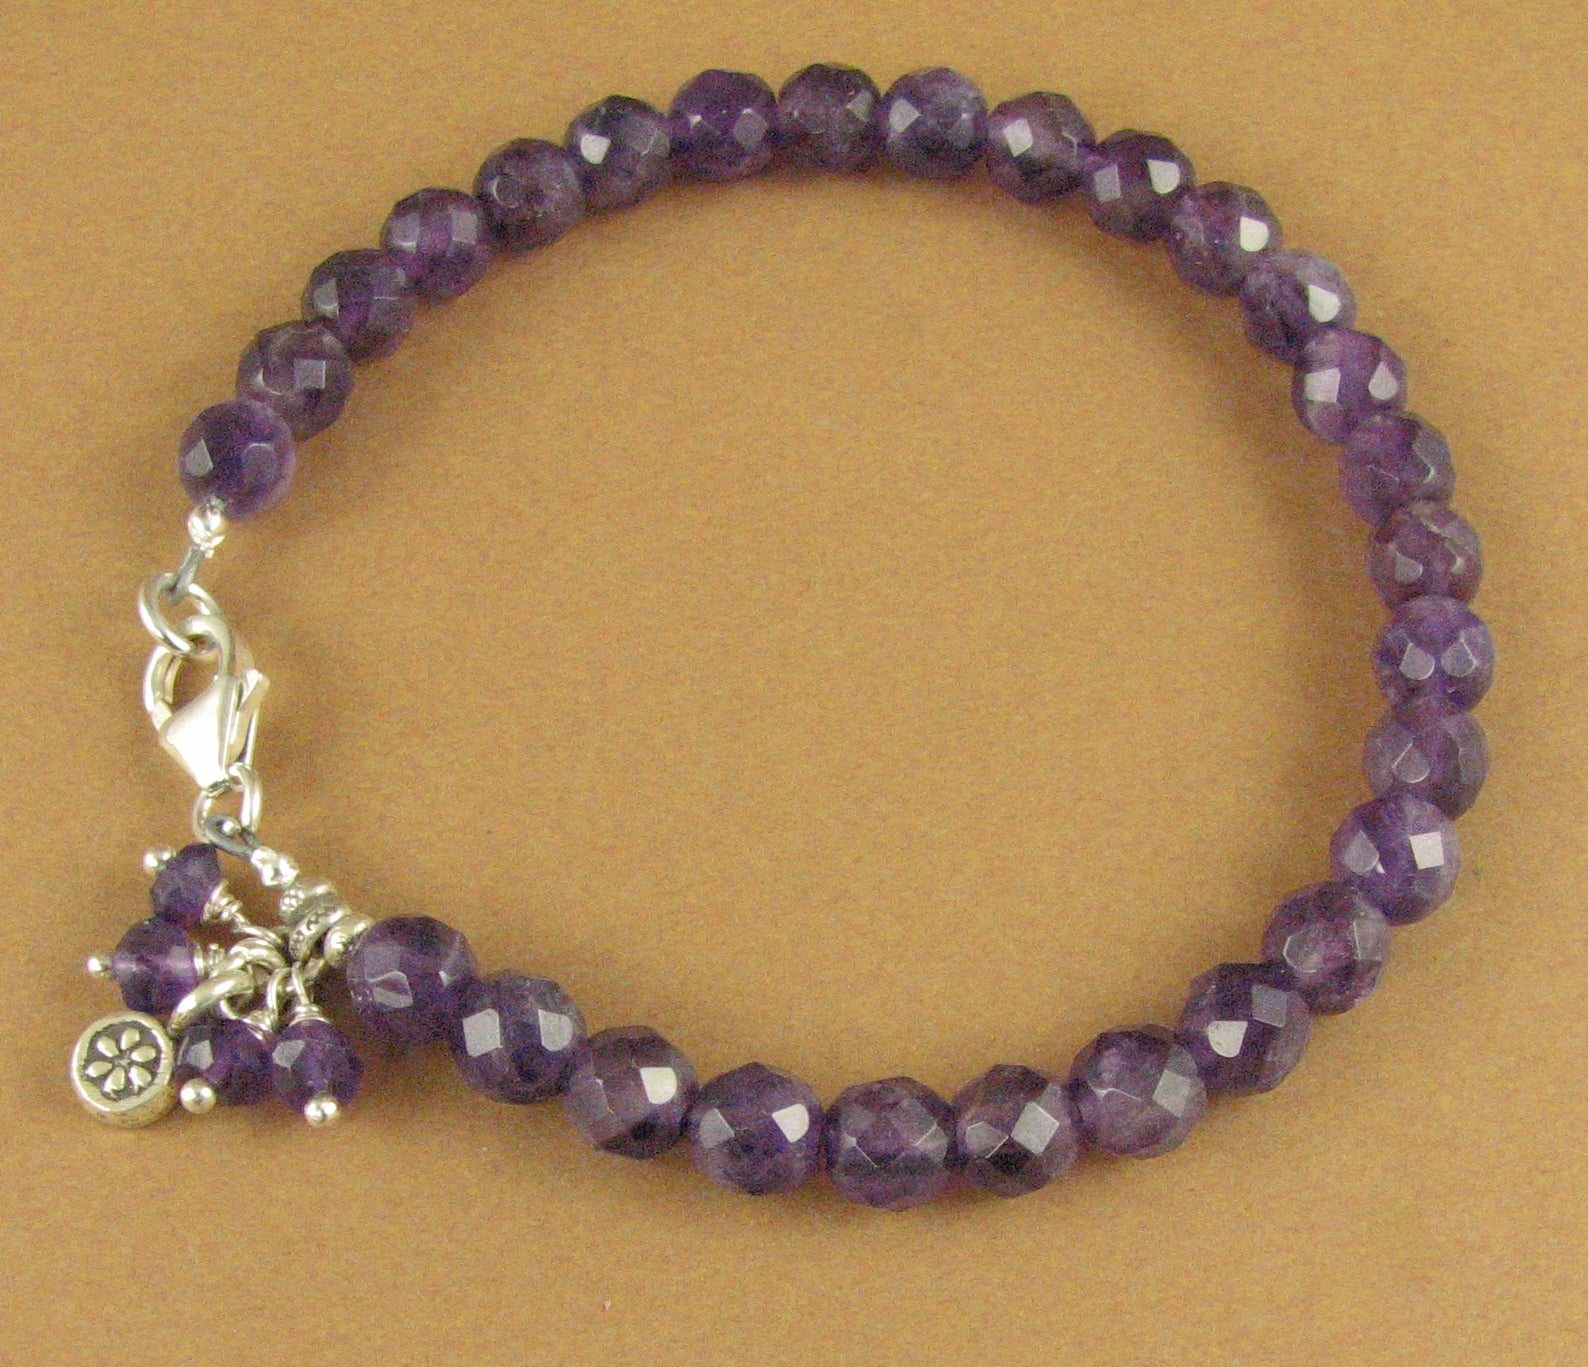 Amethyst and silver bracelet. Flower charm dangle. Sterling silver 925. Handmade